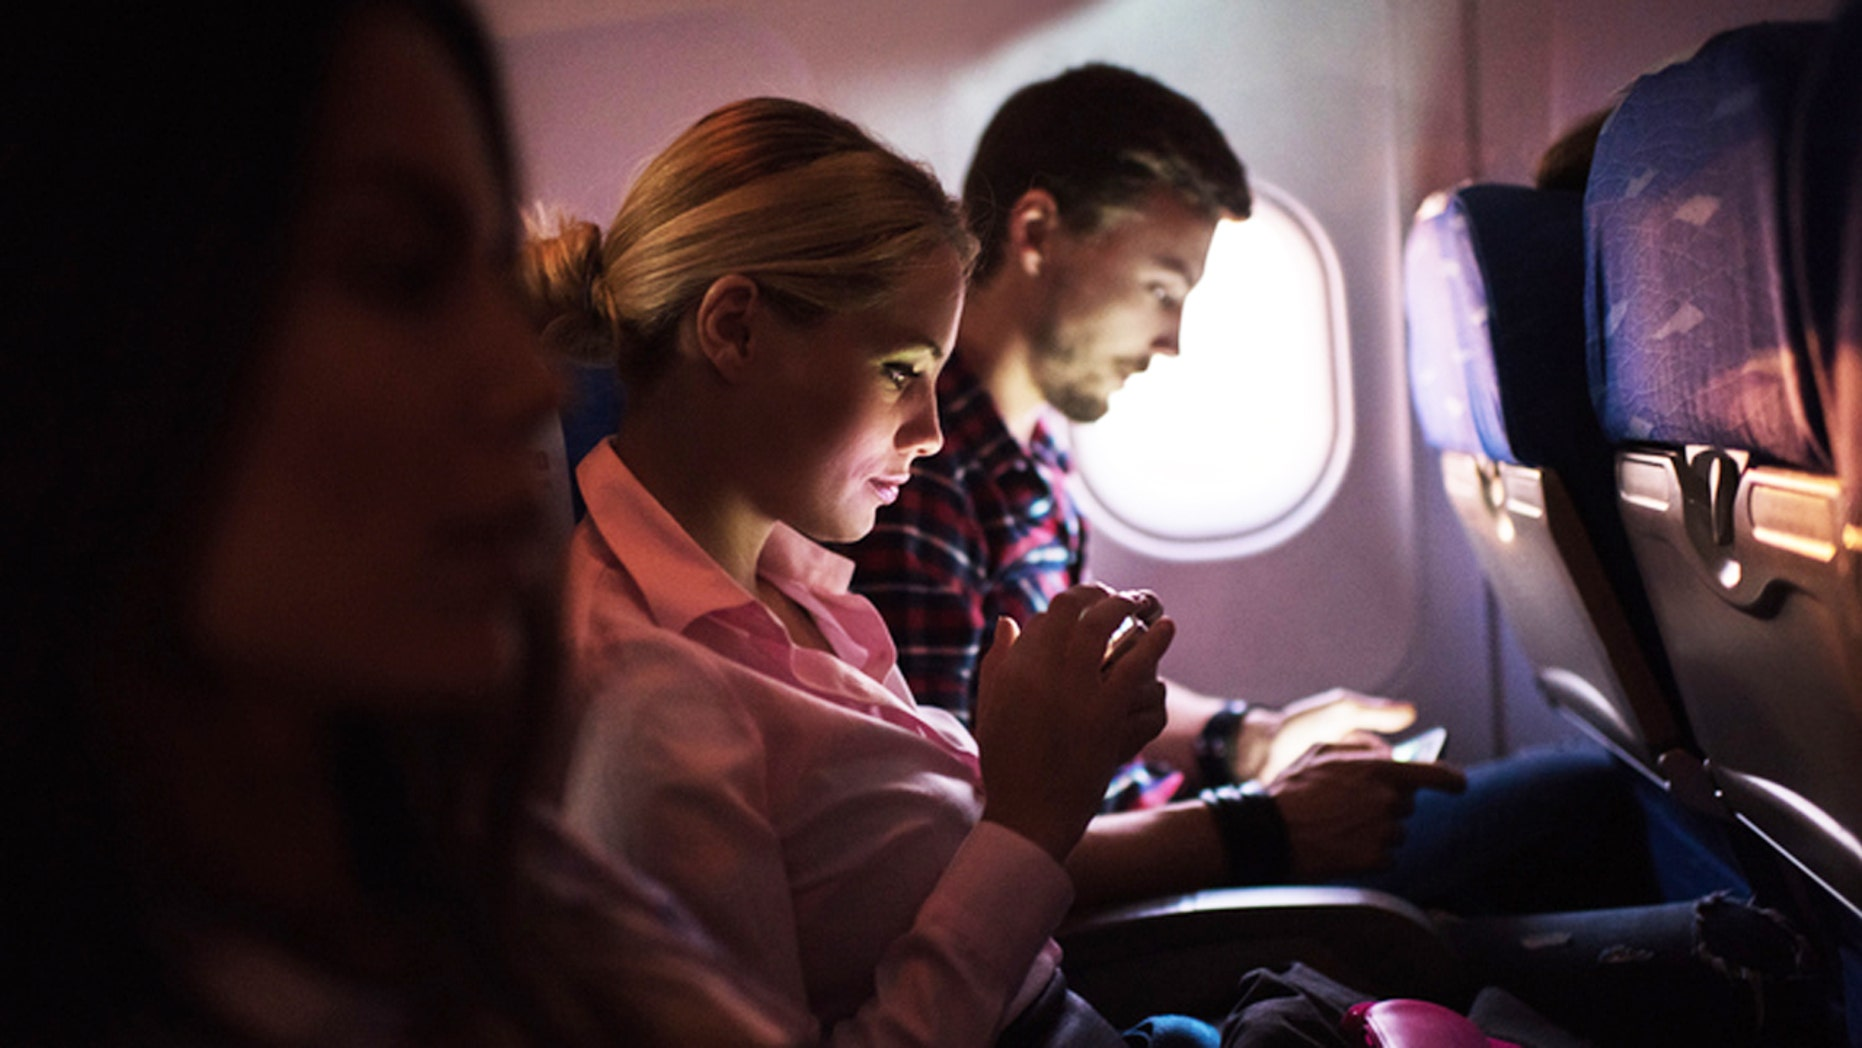 People traveling by airplane. Focus is on young woman text messaging.